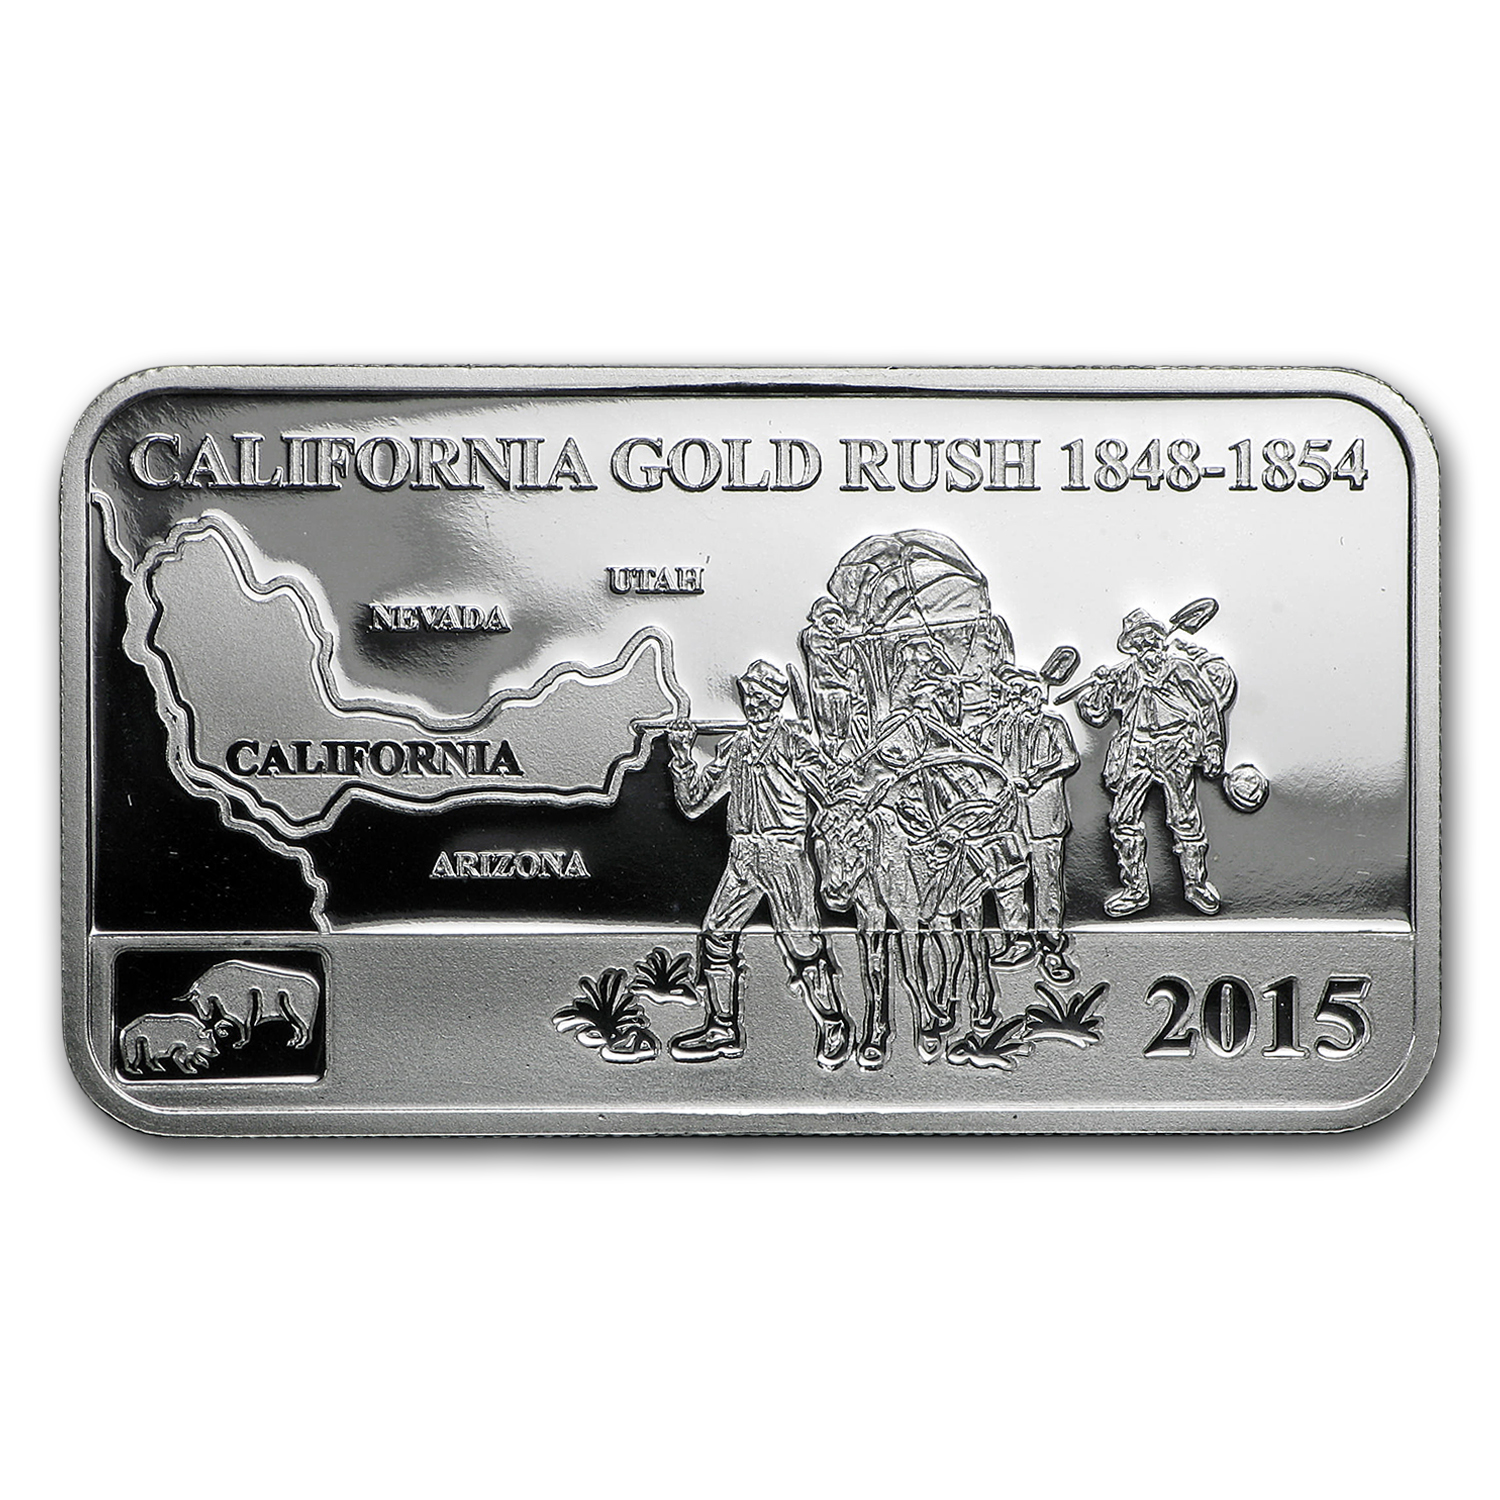 2015 Cook Islds 1/2 oz Silver Global Trade California Gold Rush